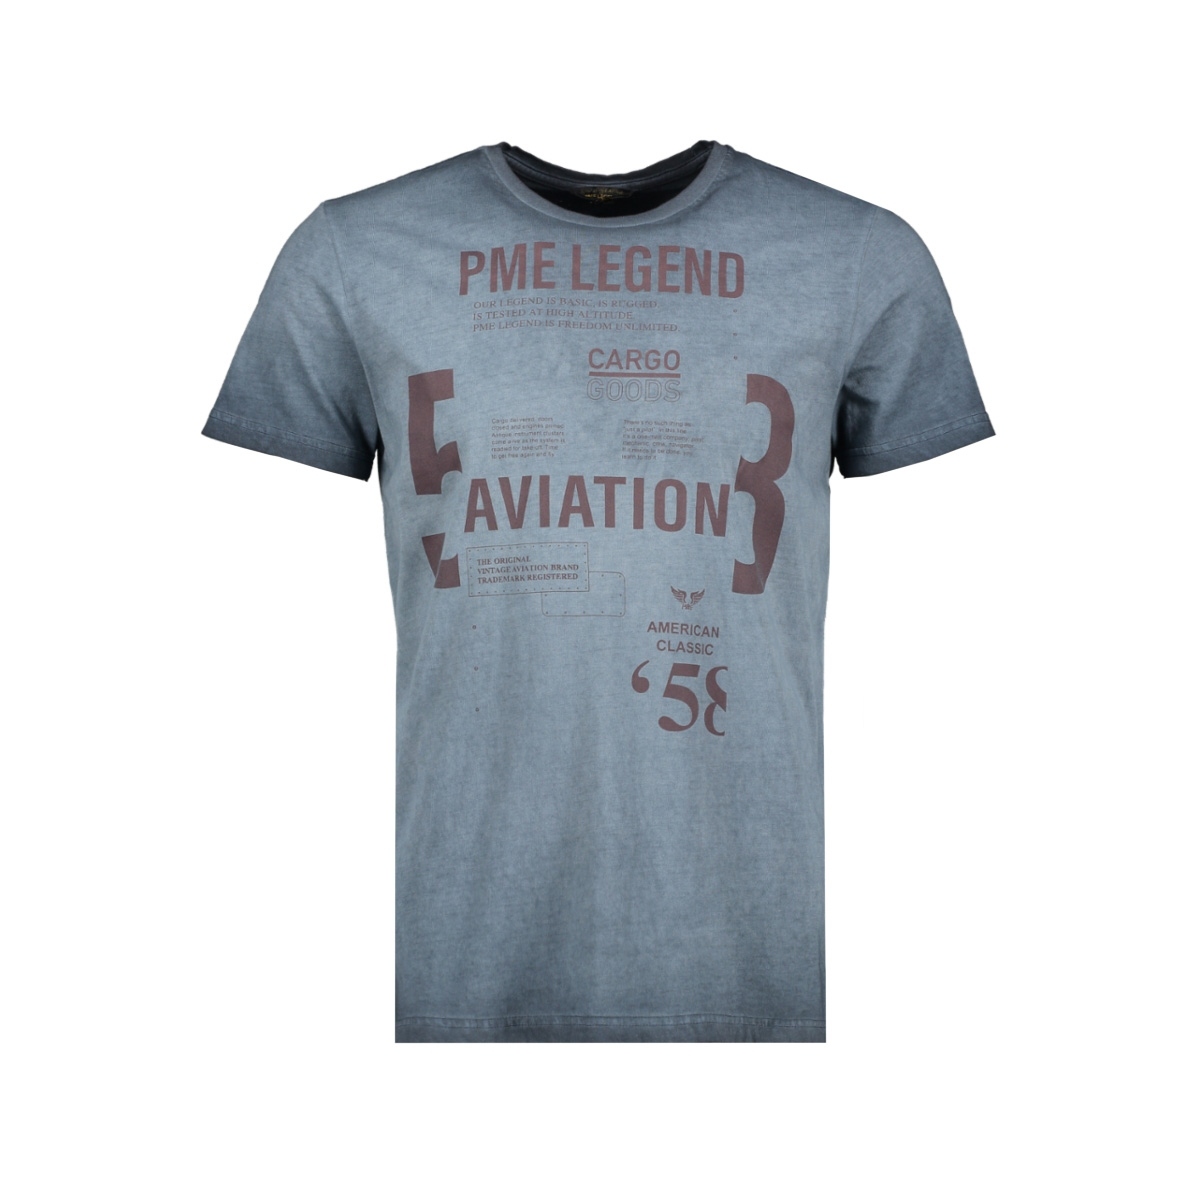 ptss191512 pme legend t-shirt 5281